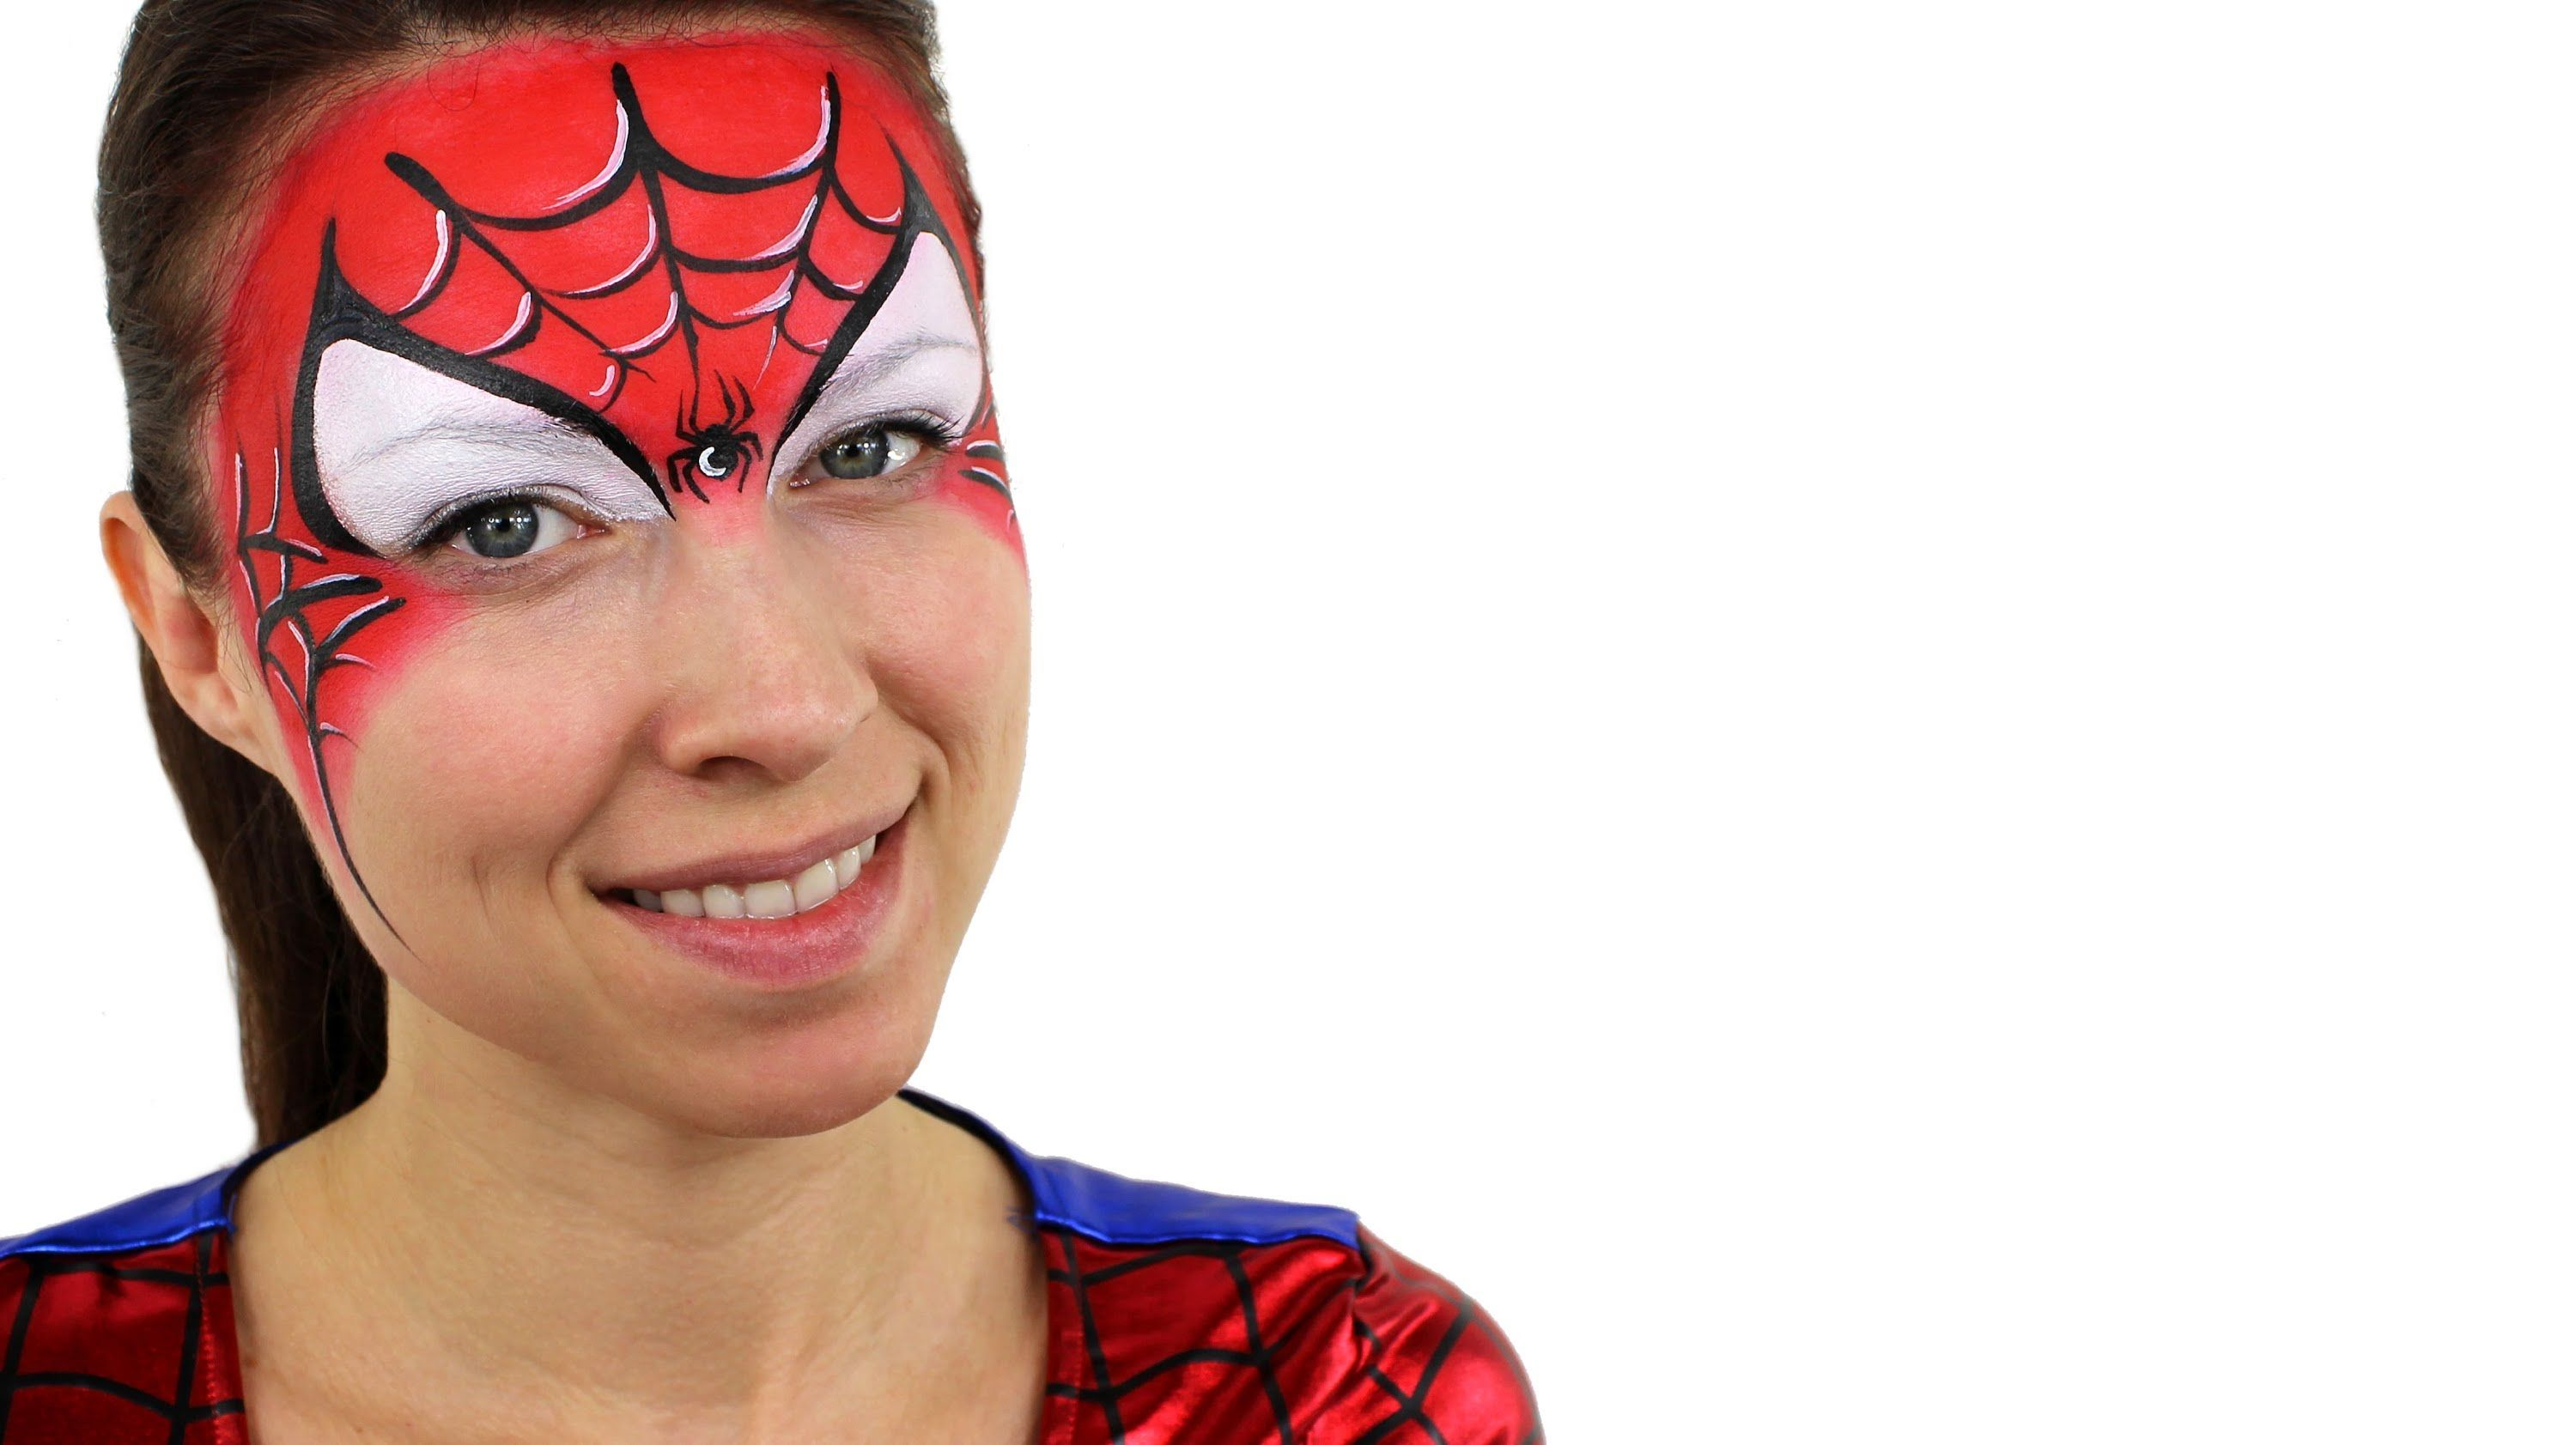 Spiderman butterfly face painting face painting videos spiderman butterfly face painting face painting videos pinterest butterfly face paint butterfly face and butterfly baditri Images